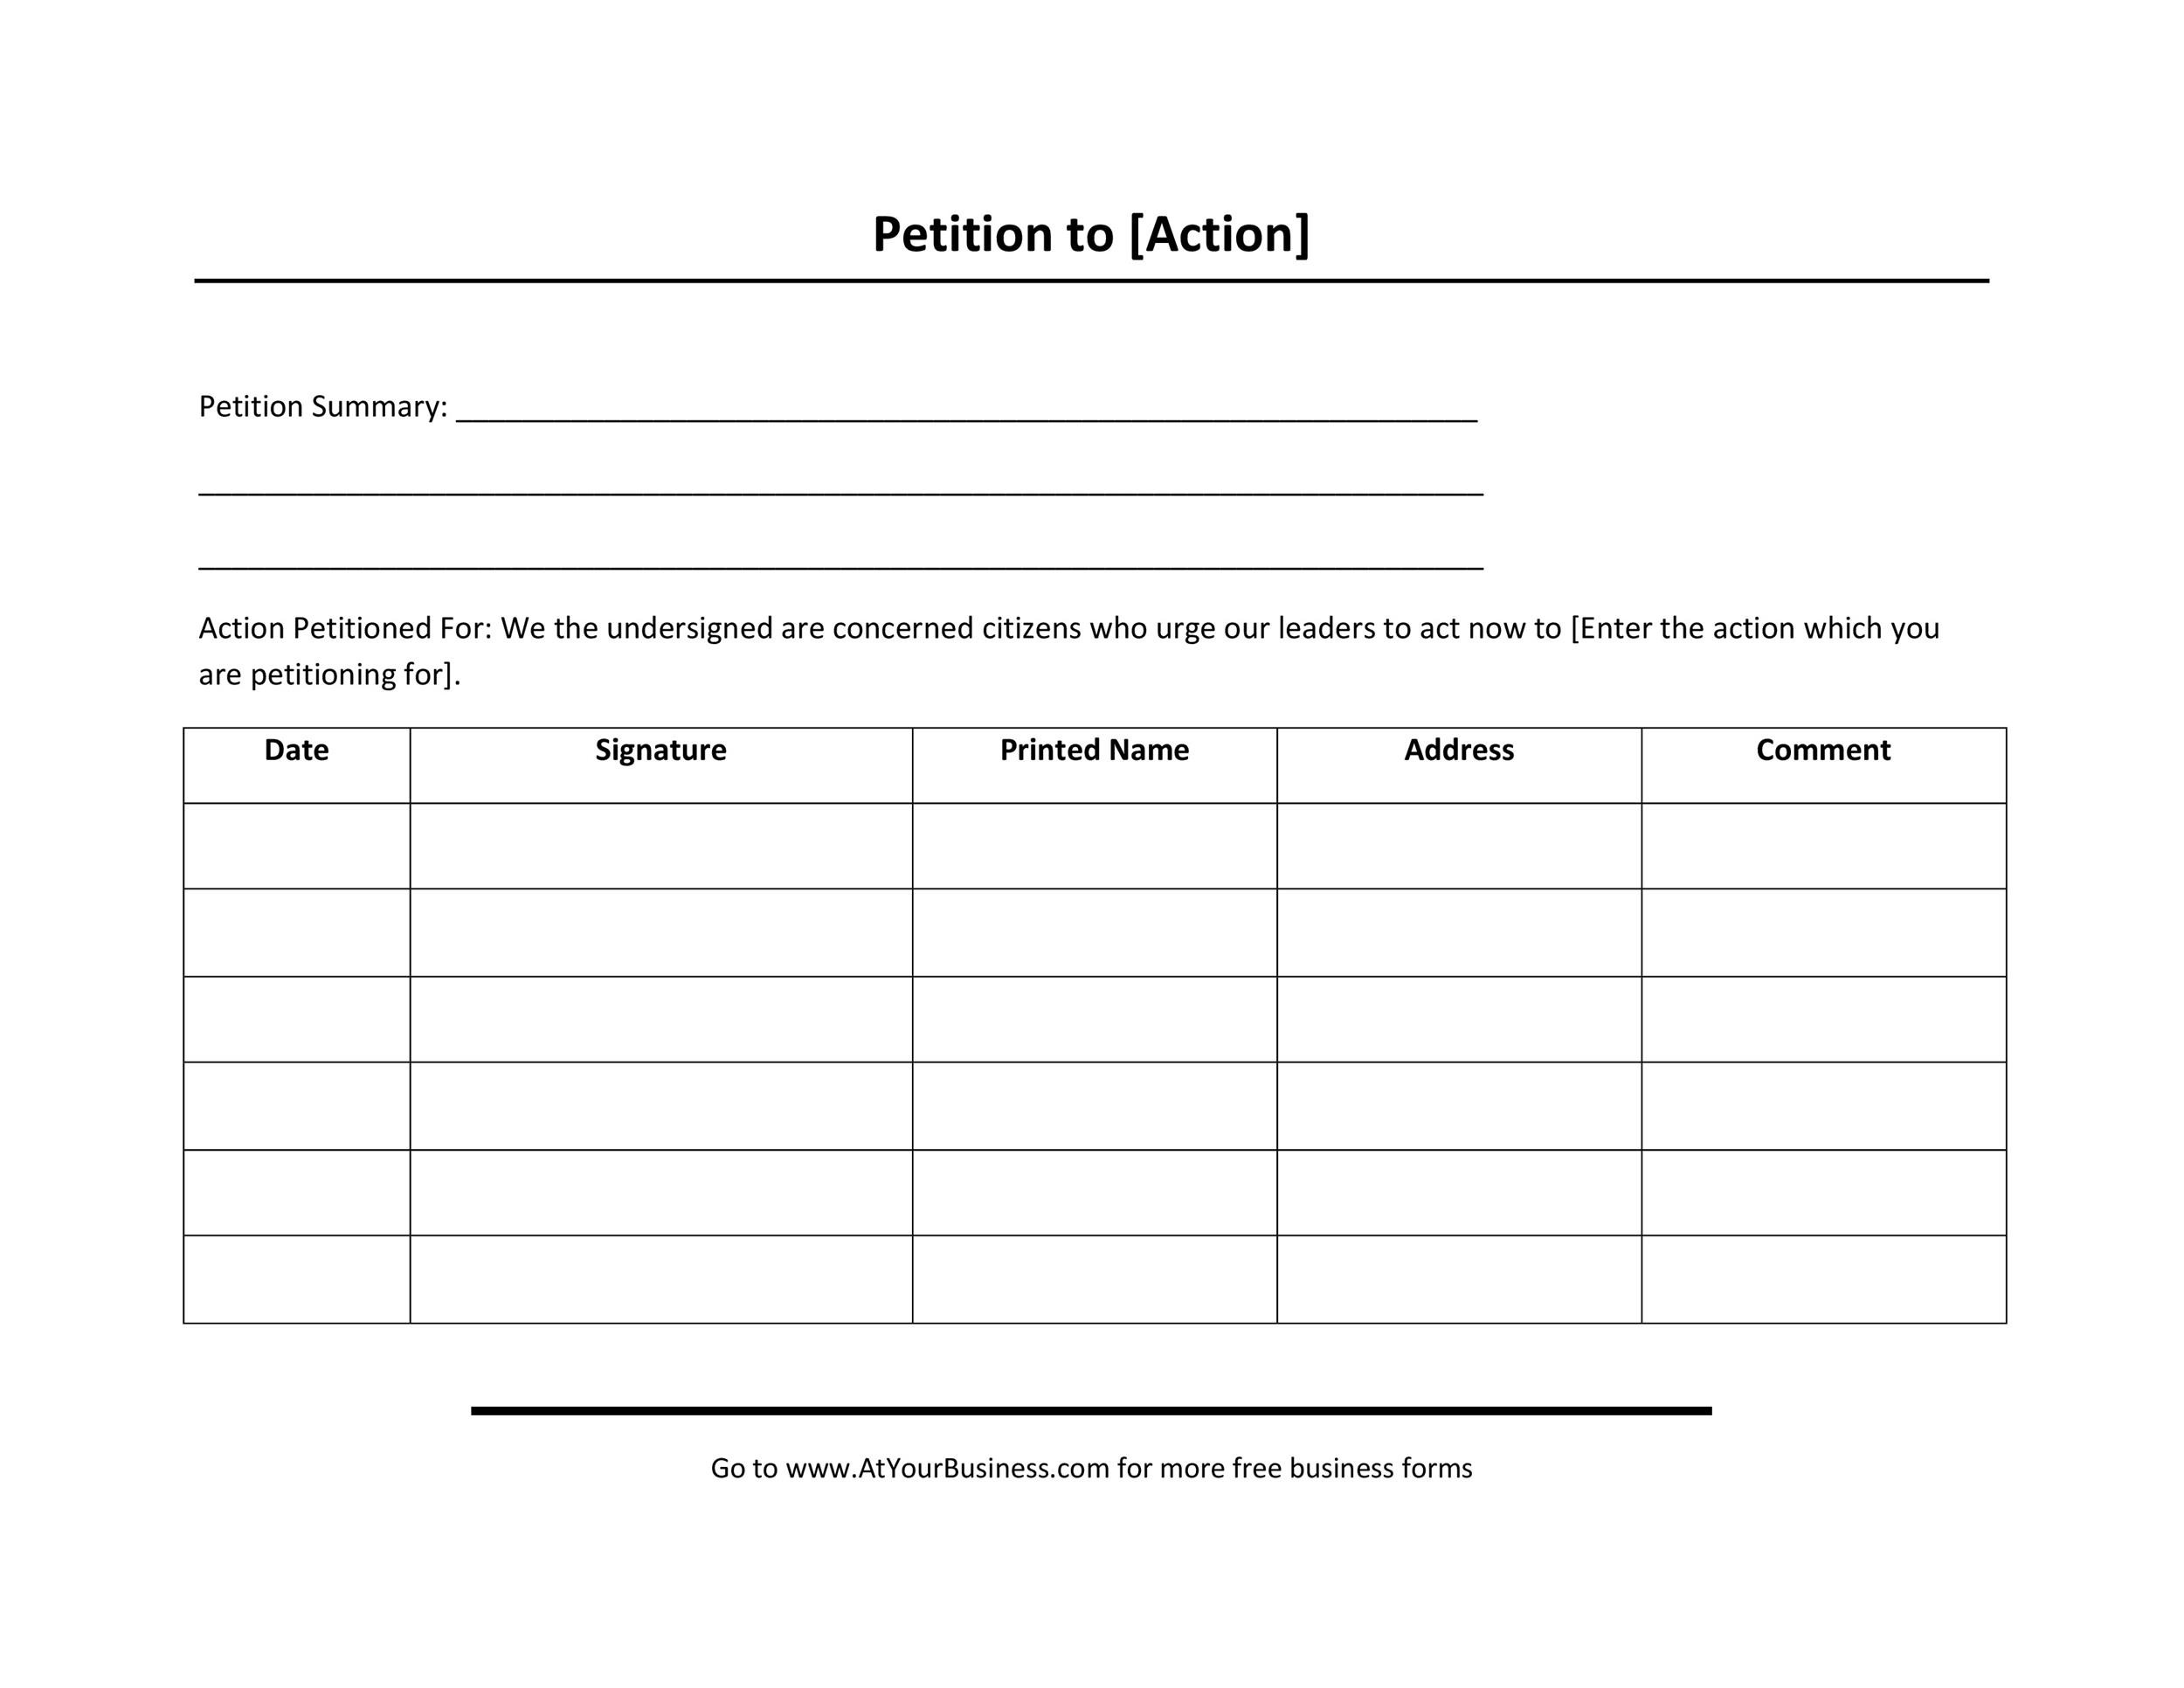 templates for petitions 30 petition templates how to write petition guide